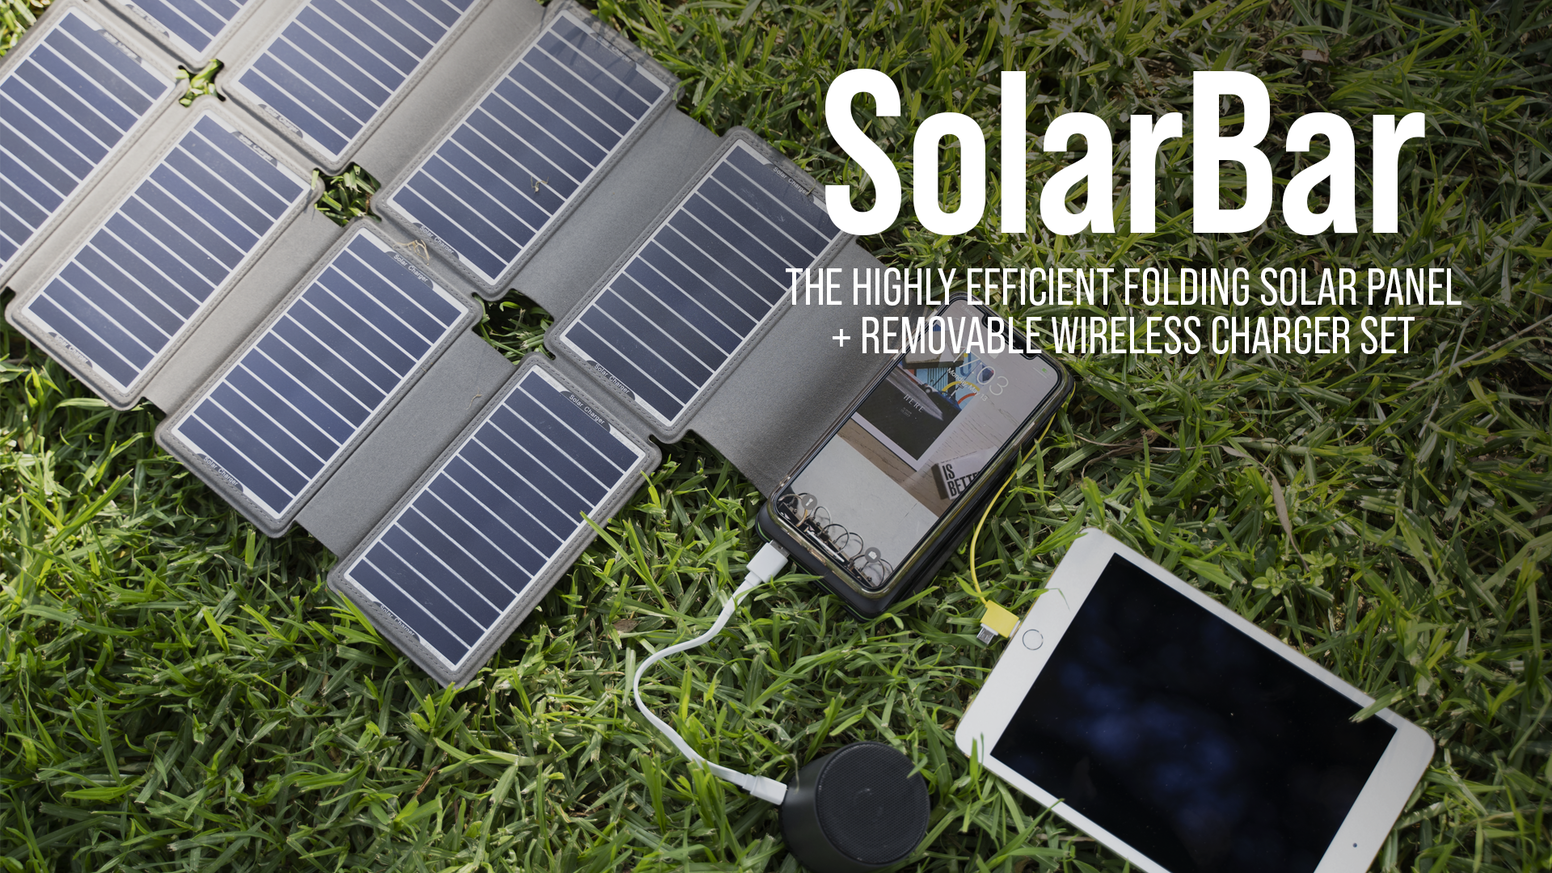 8 powerful panels & 20W Solar charging    10000mah removable charger  Built in 3-in-1 charging cable  Wireless charging  QC 3.0